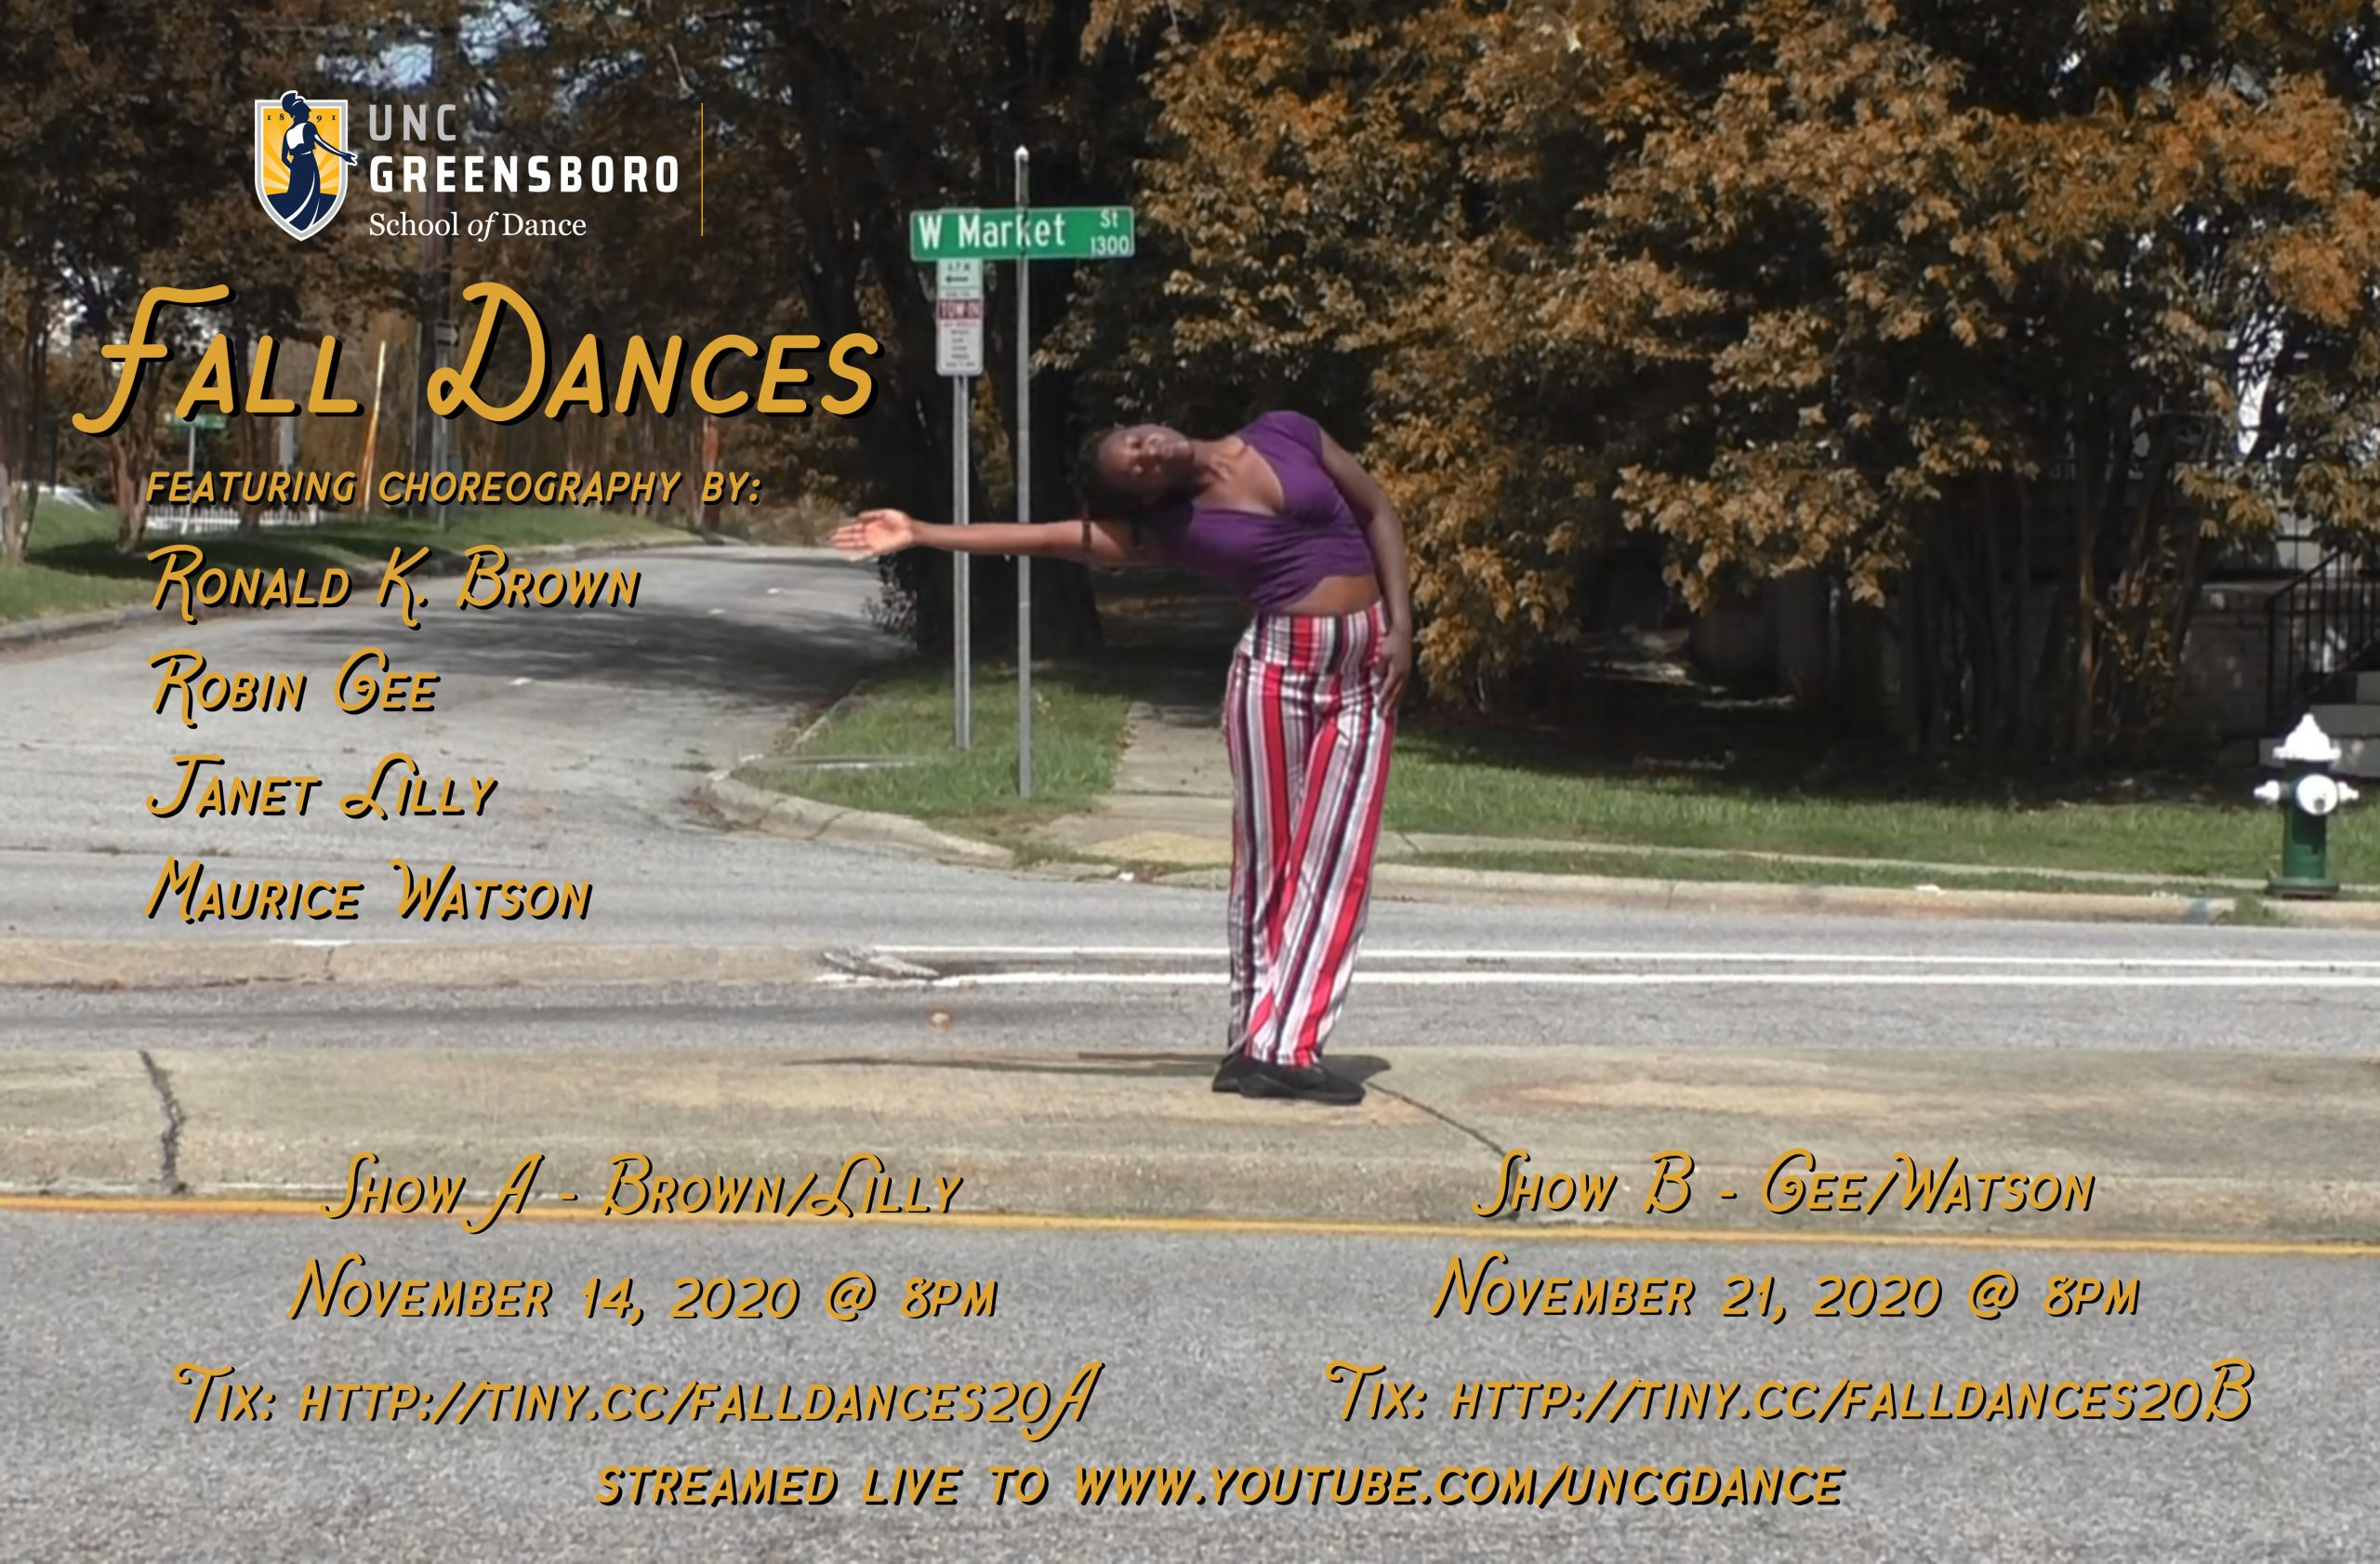 An image of a dancer with text listing information about UNCG Fall Dances.